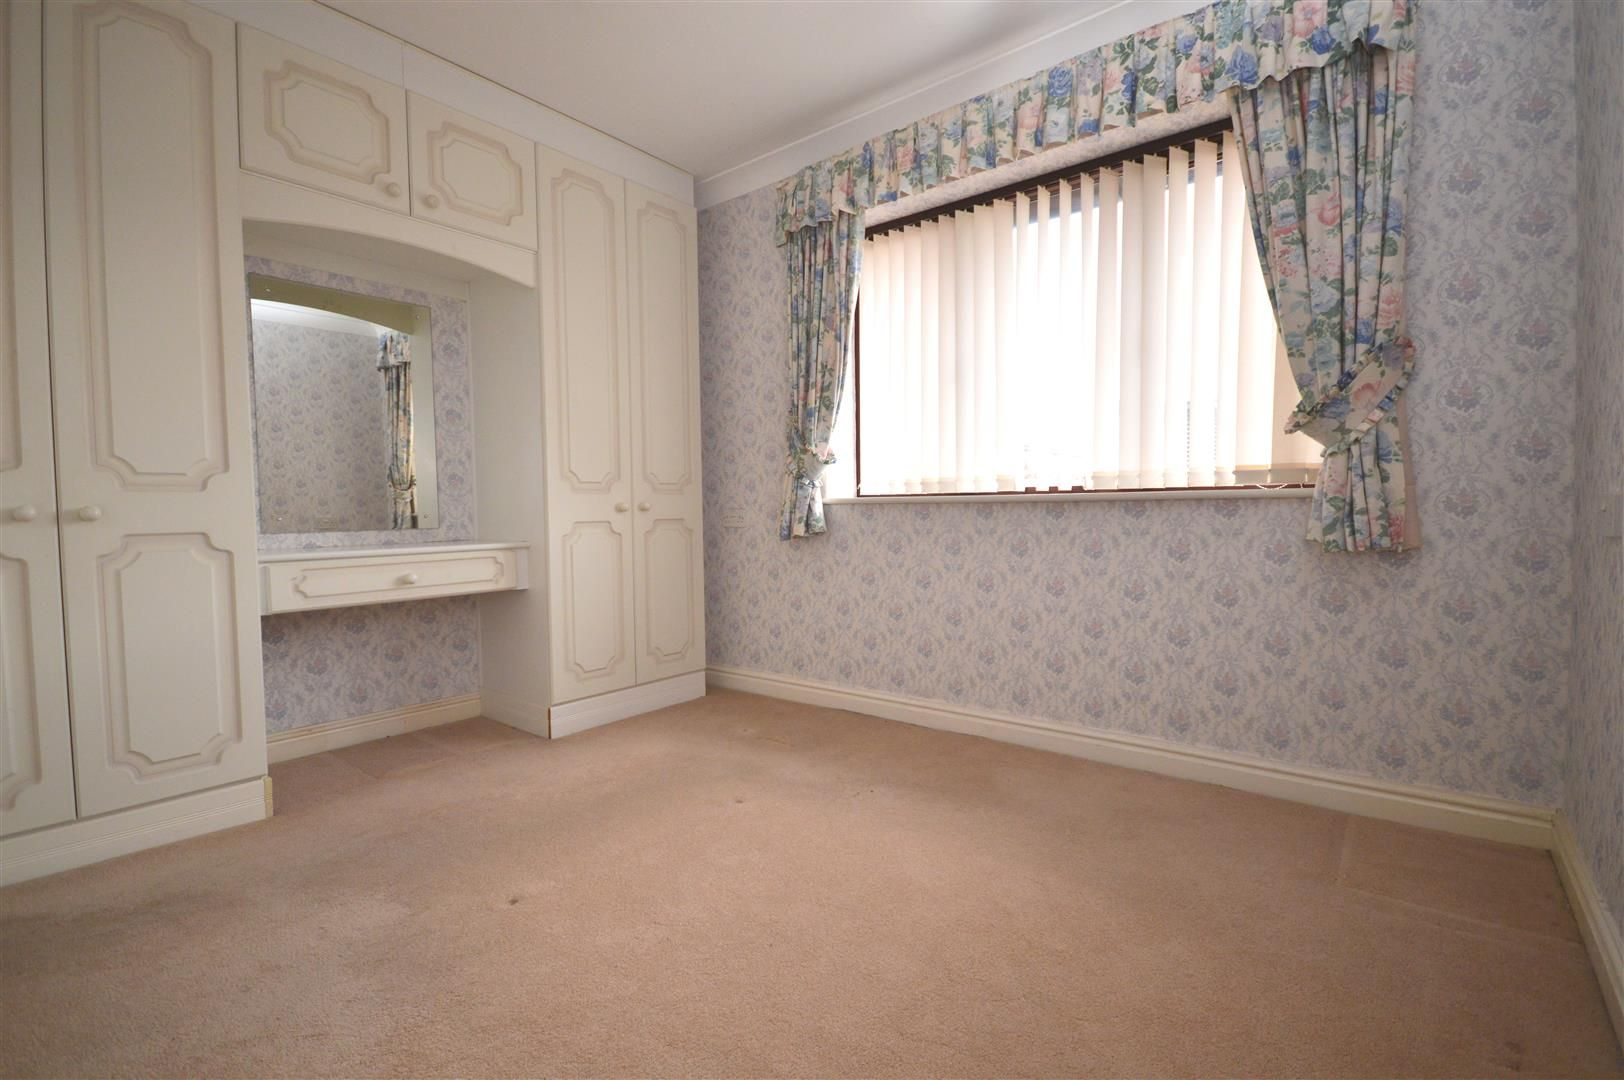 2 bed end-of-terrace for sale in Belmont  - Property Image 7